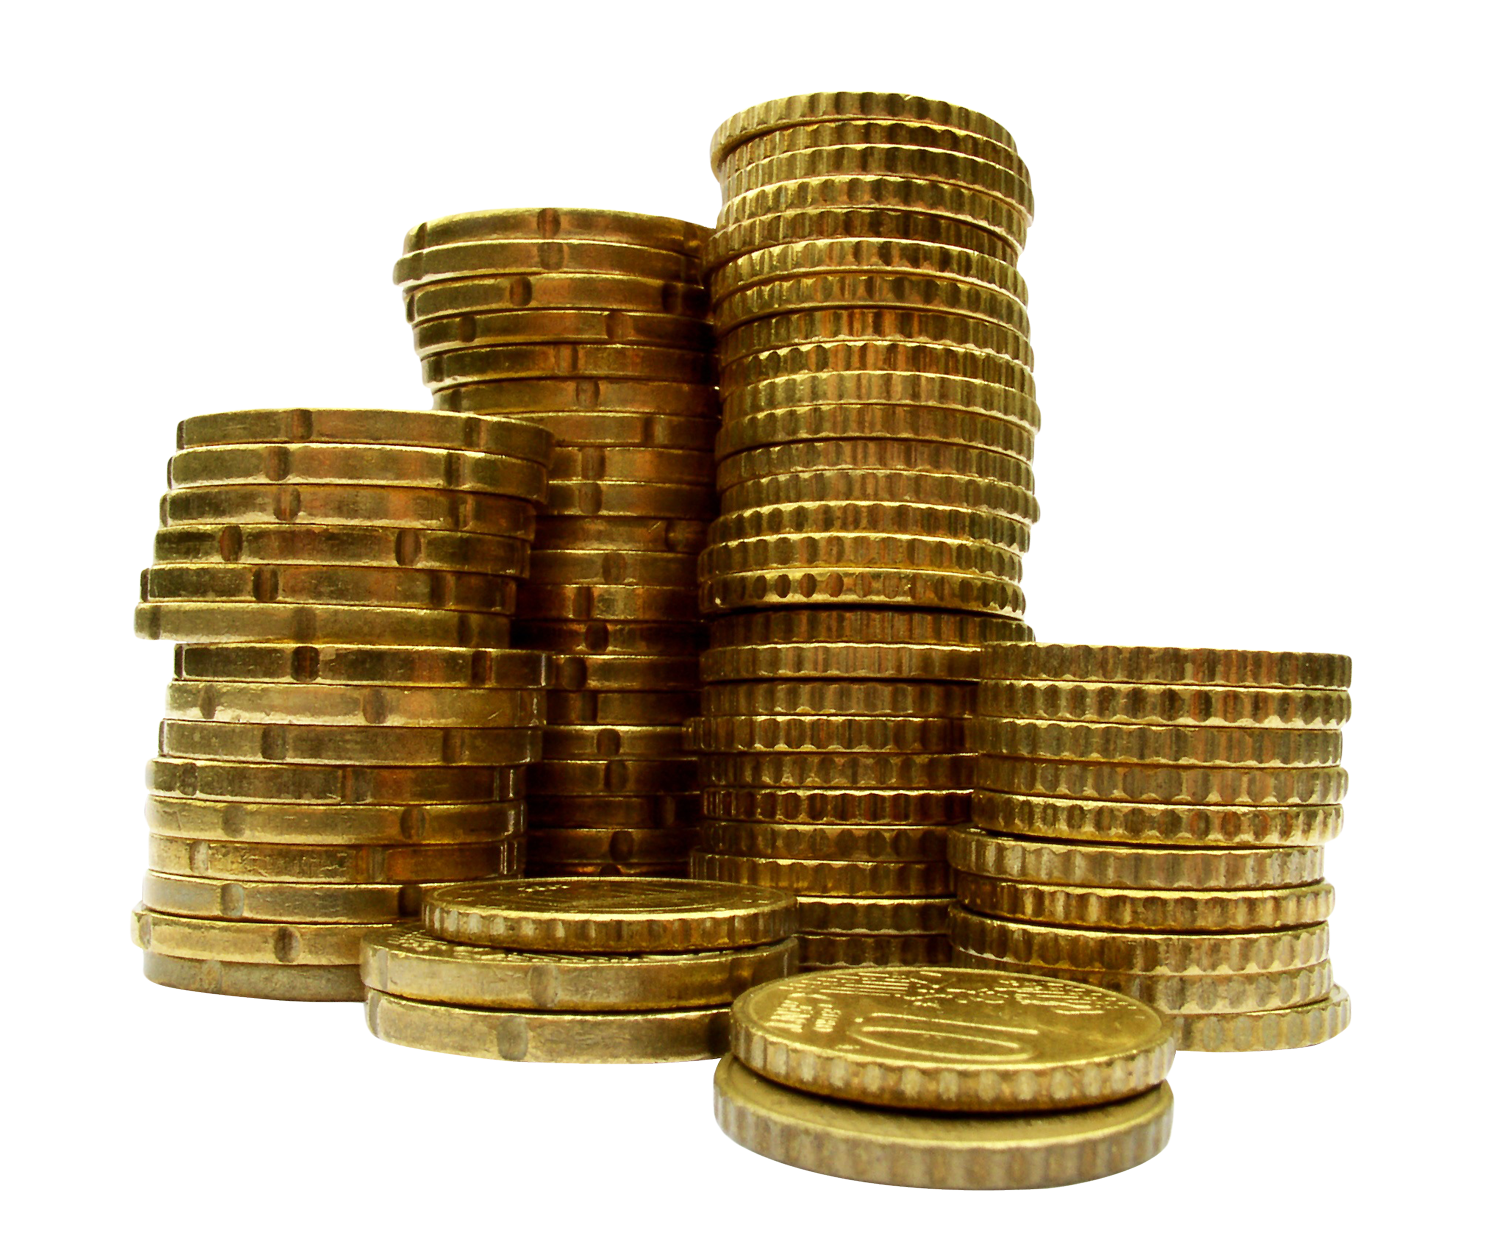 Pile of gold coins png. Coin stack free download